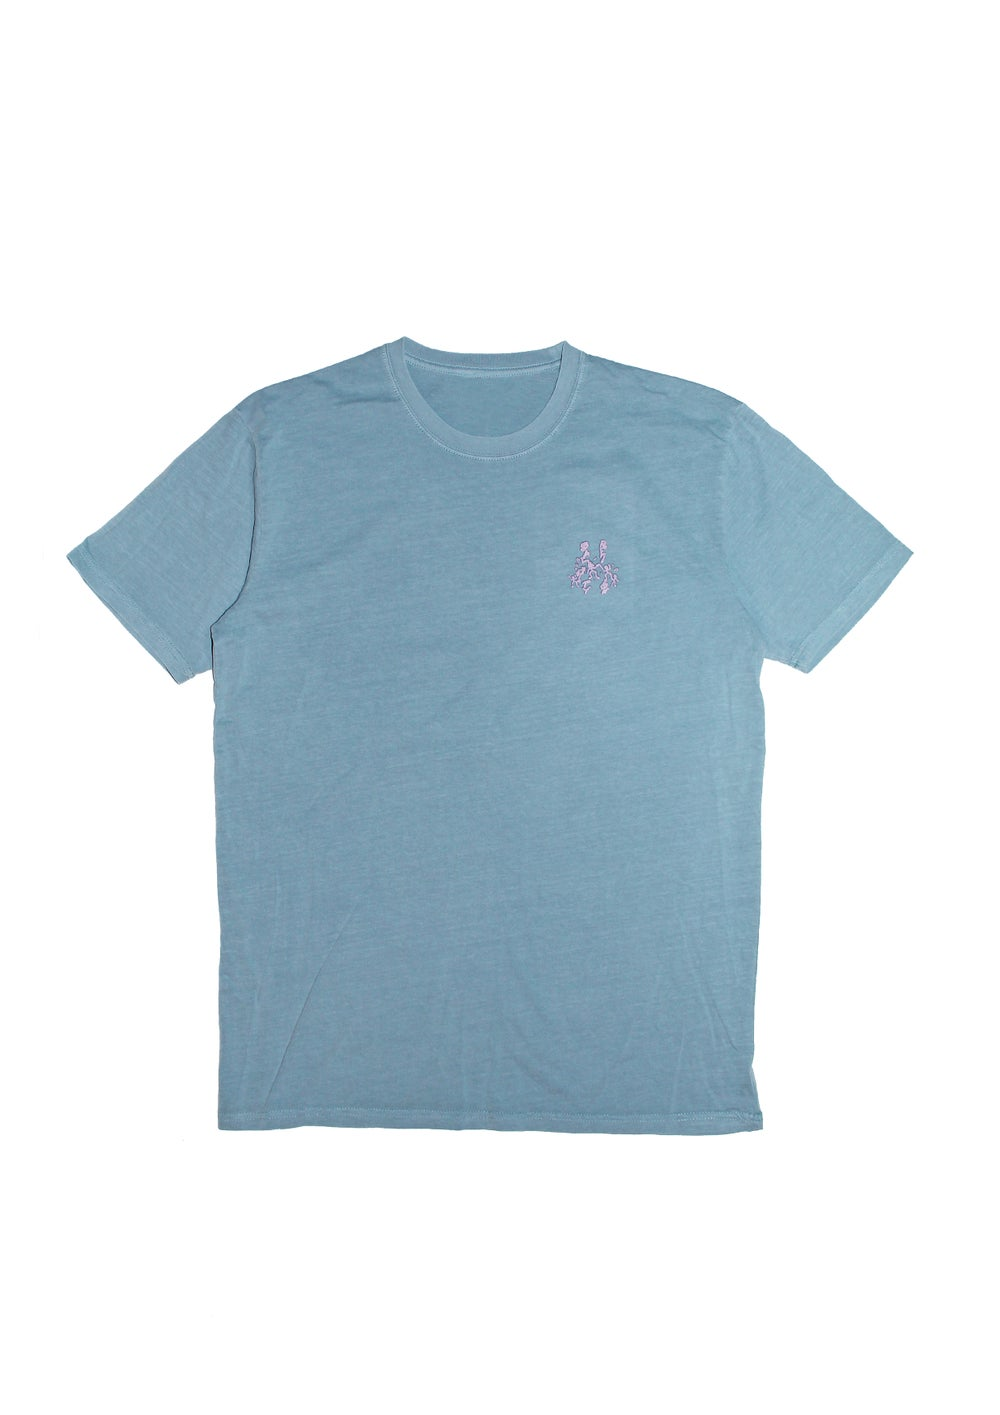 Image of Tribe Tee